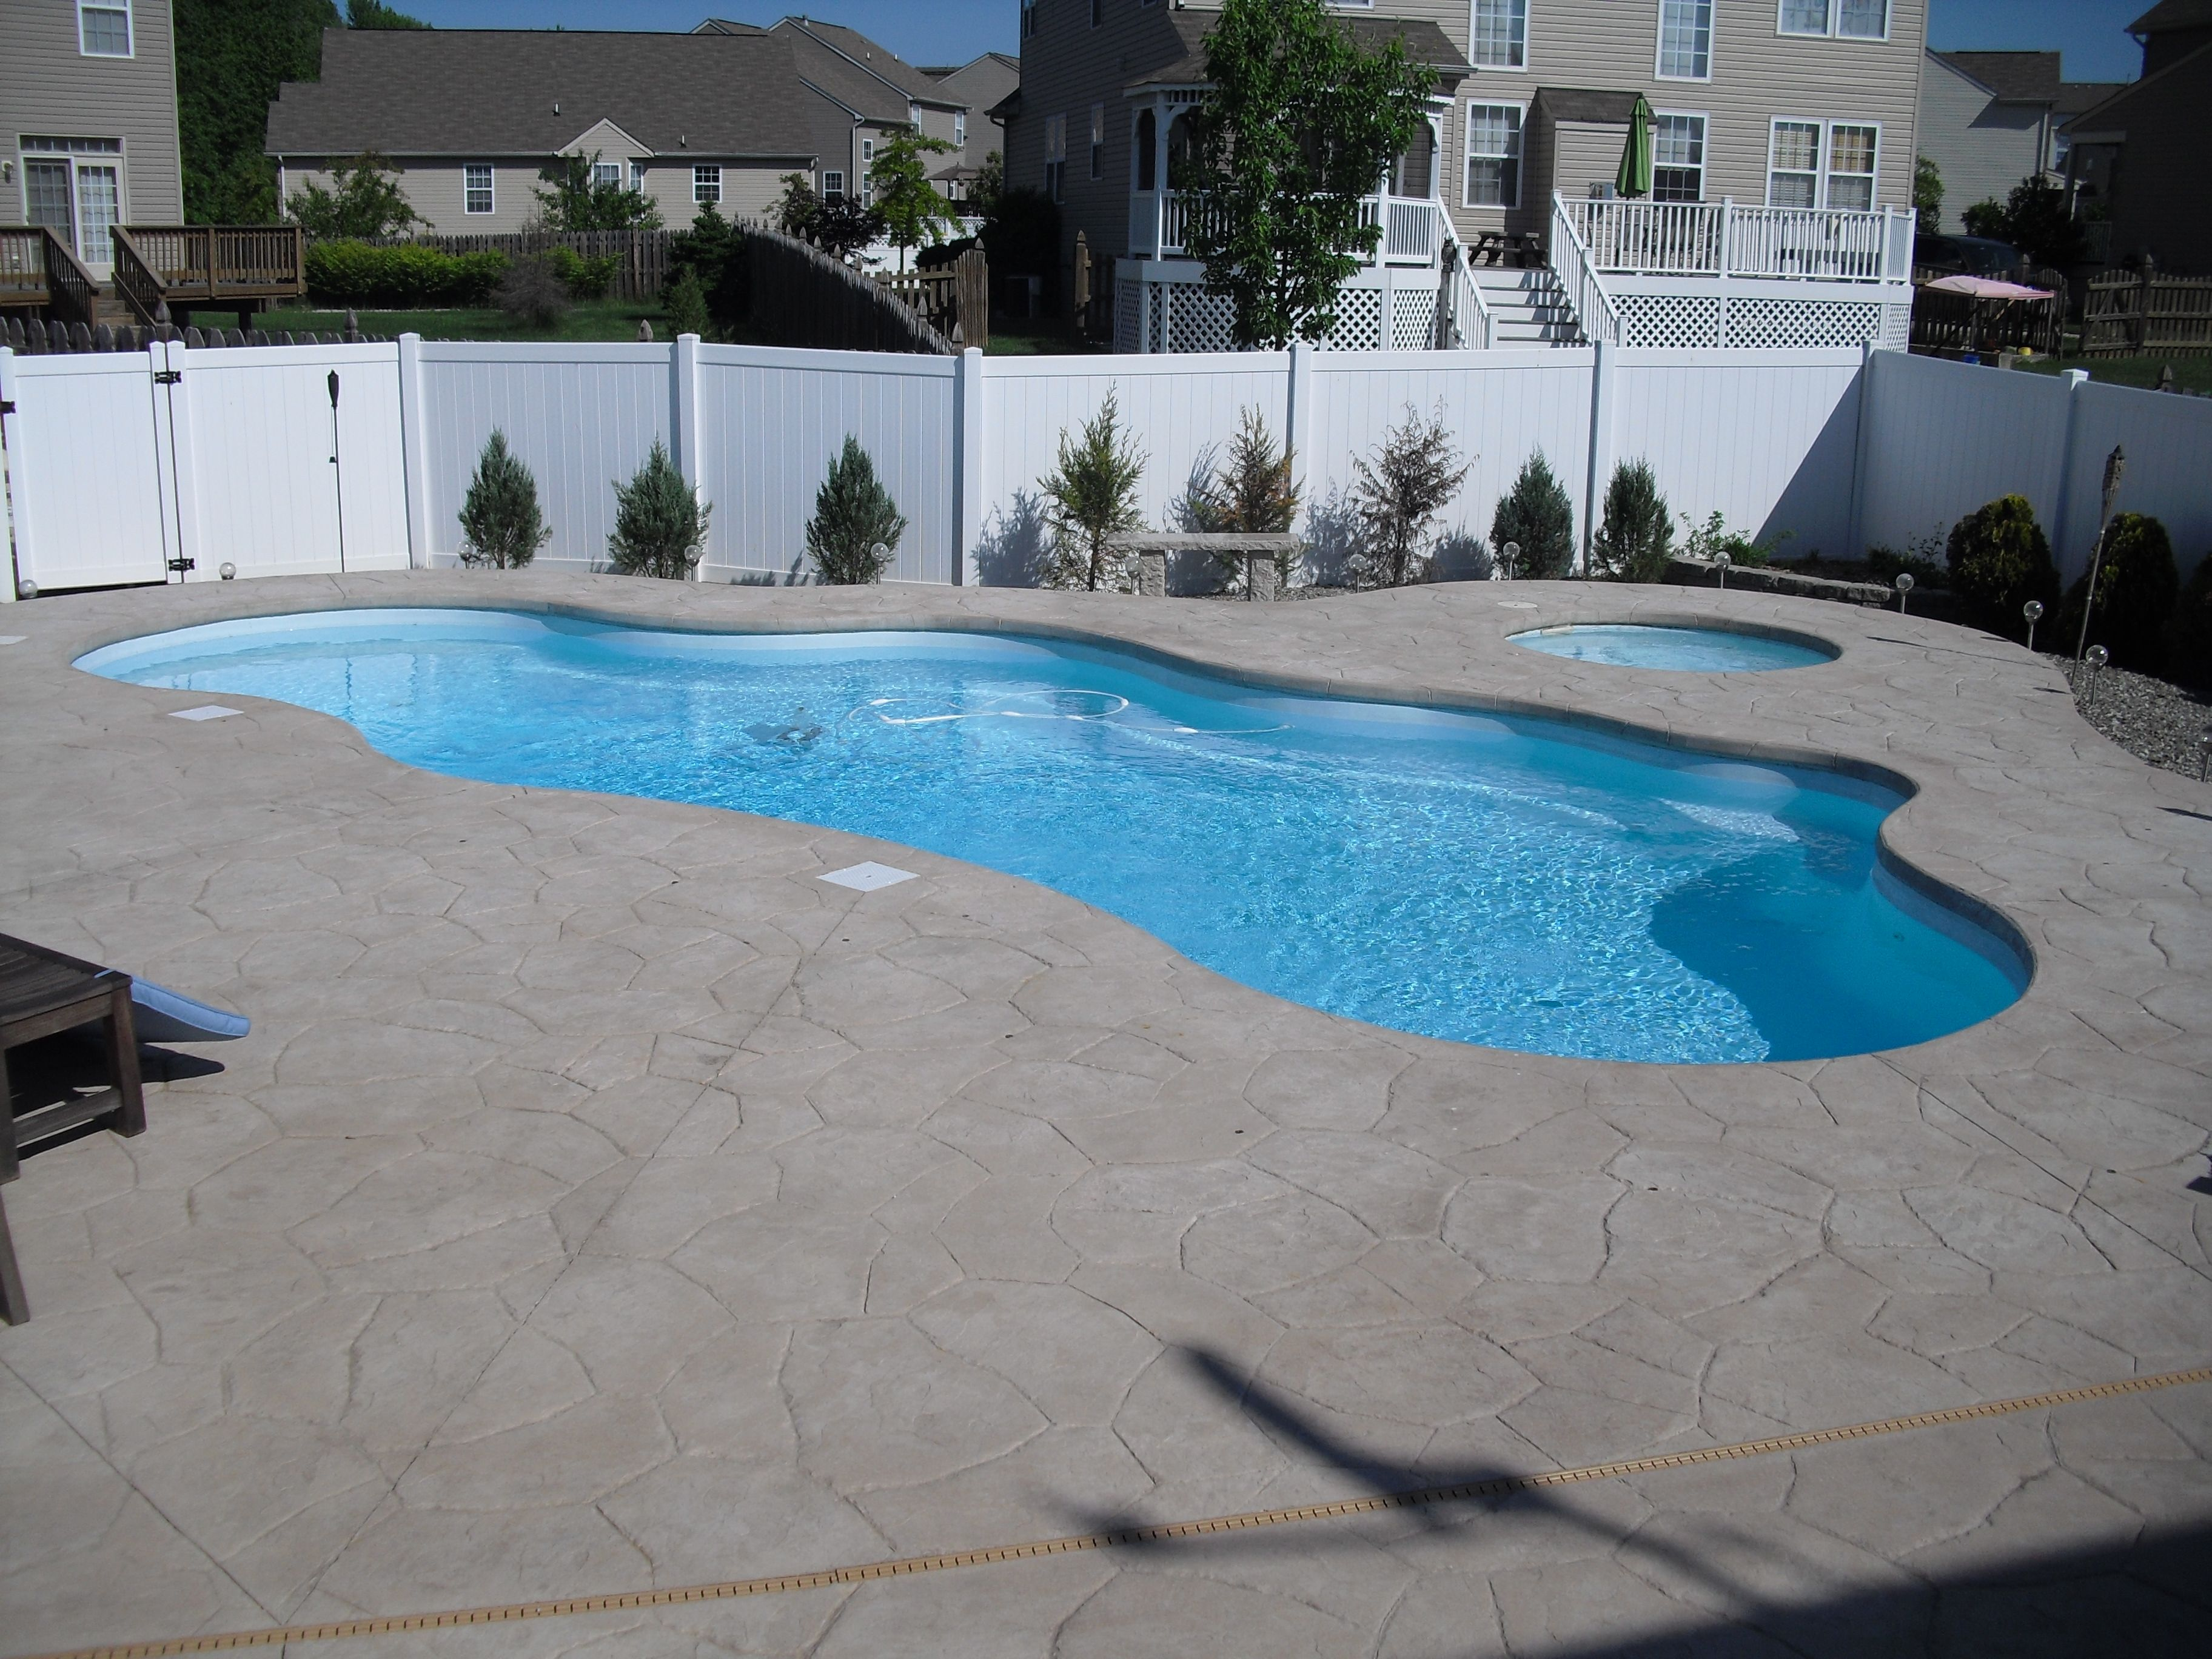 Fiberglass Pool And Spa With Cantilever Deck Stamp